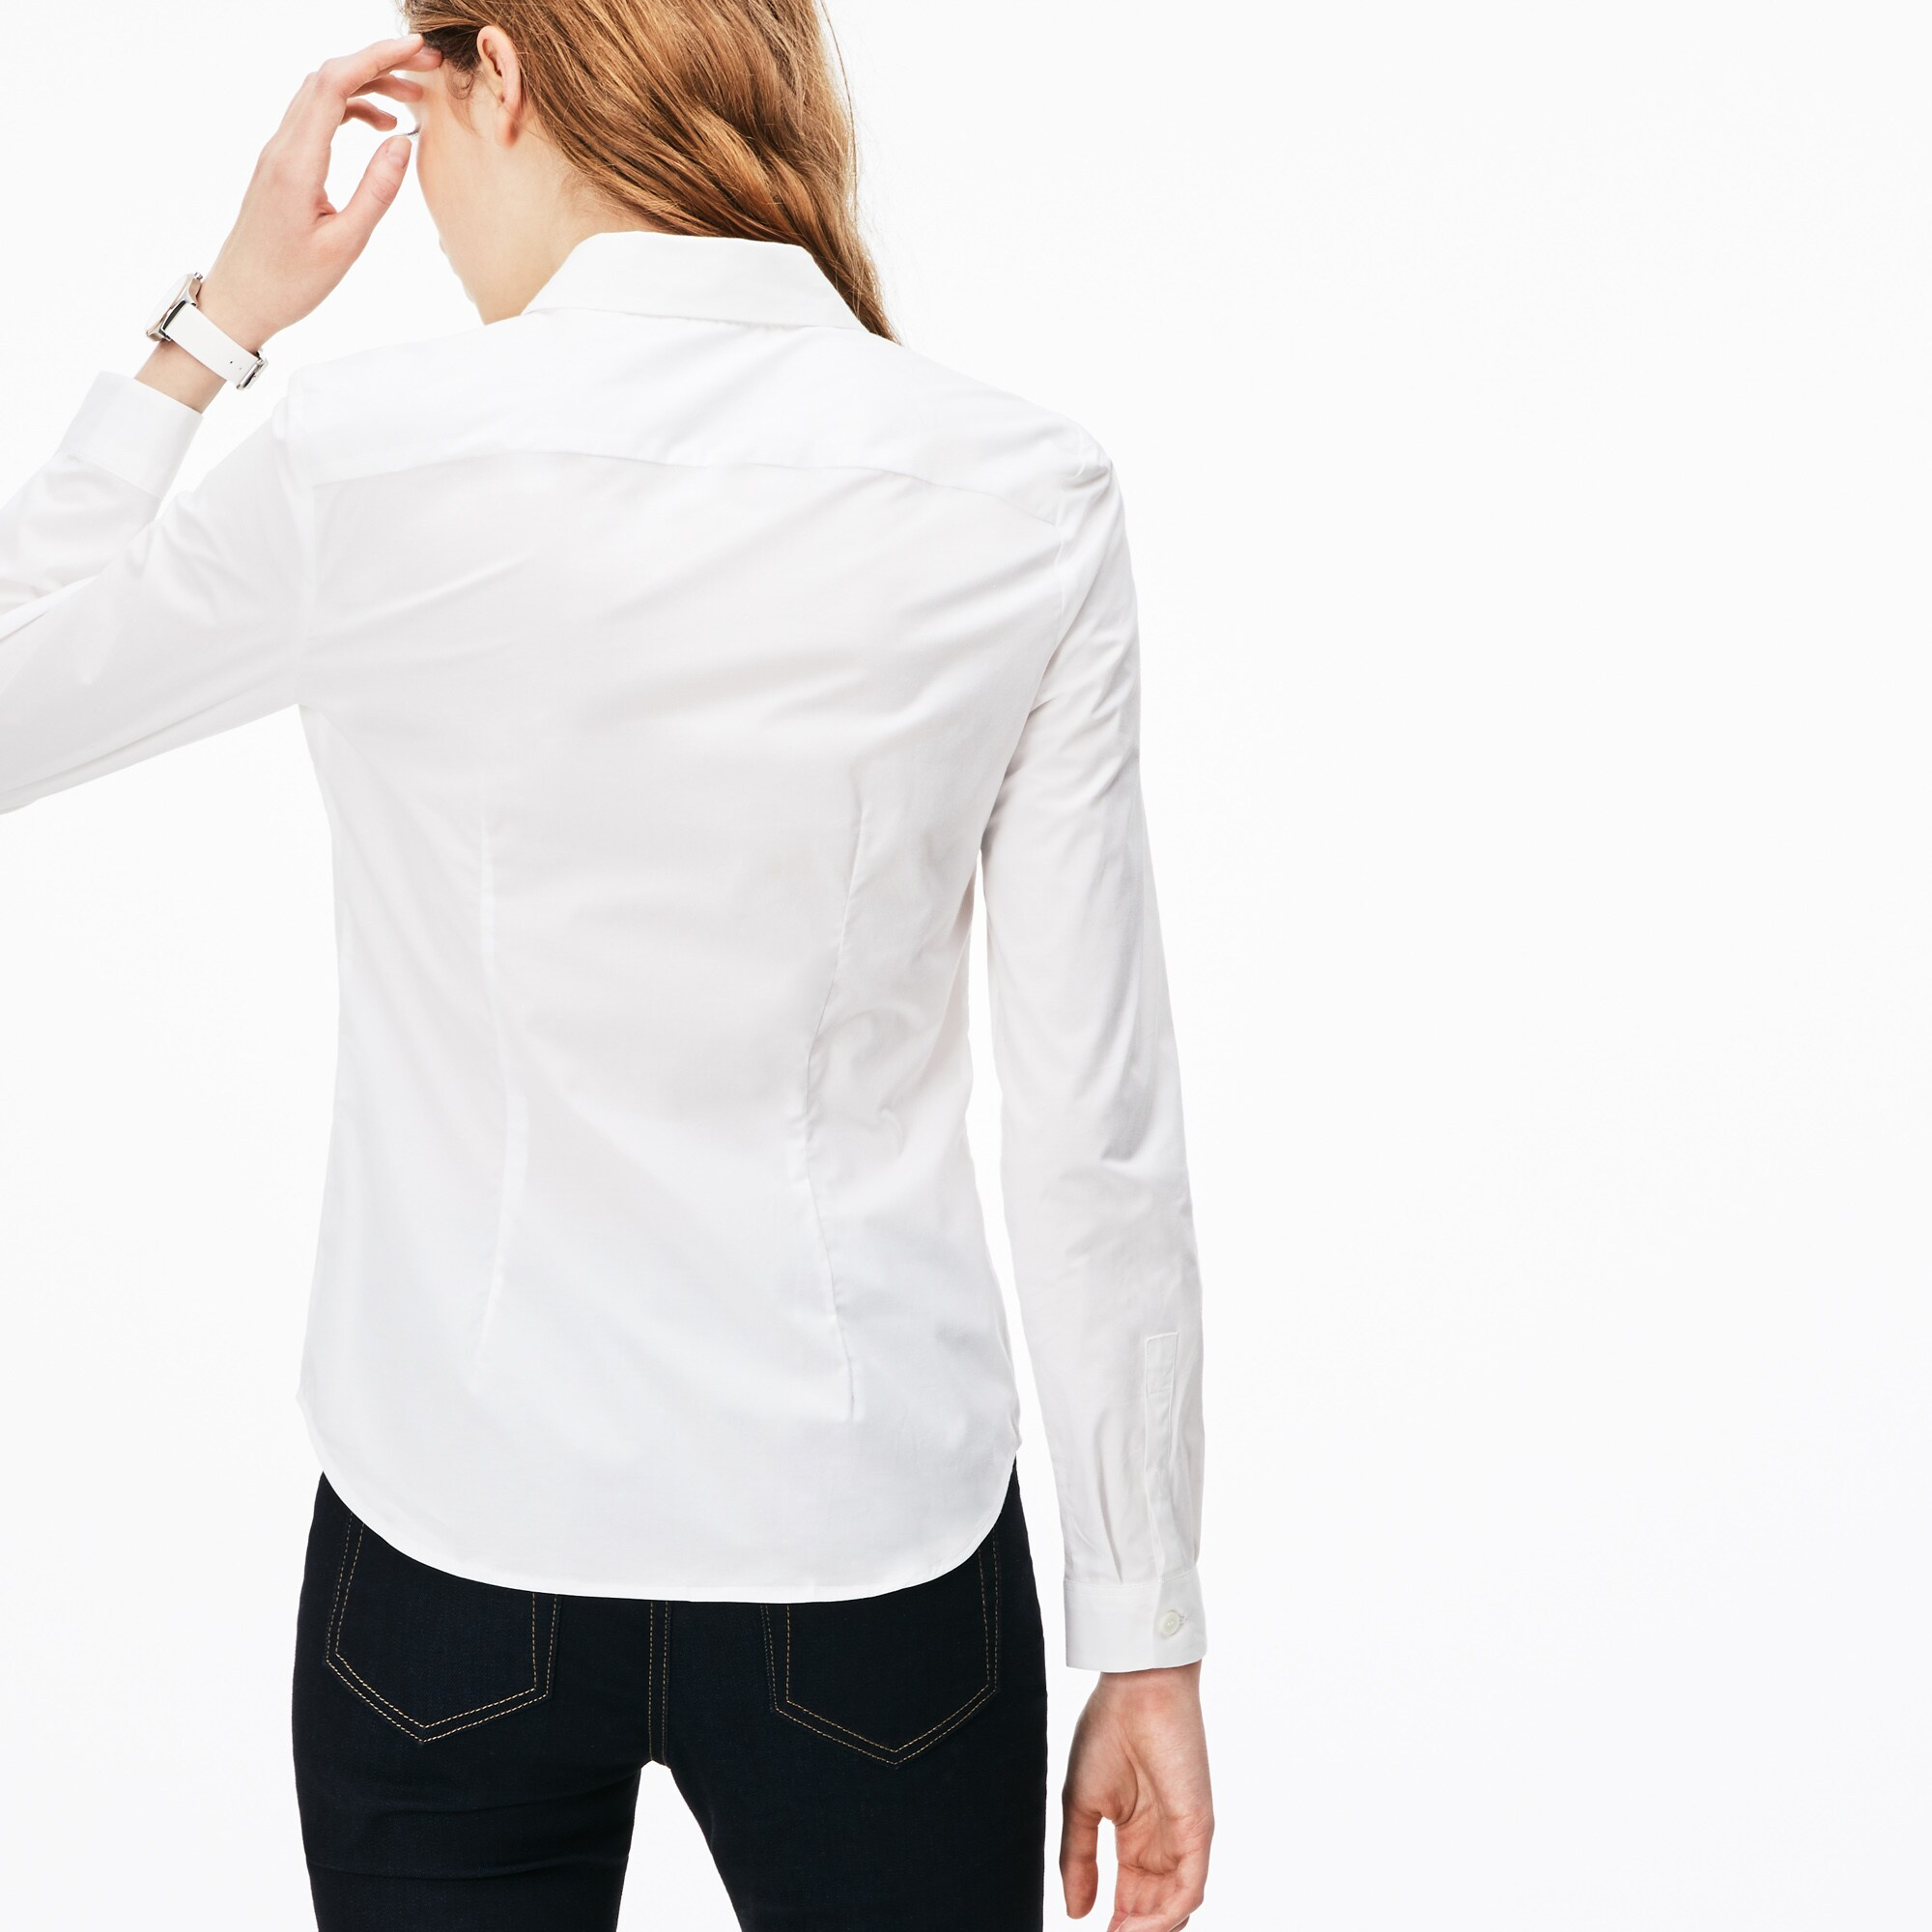 Women's Slim Fit Stretch Shirt